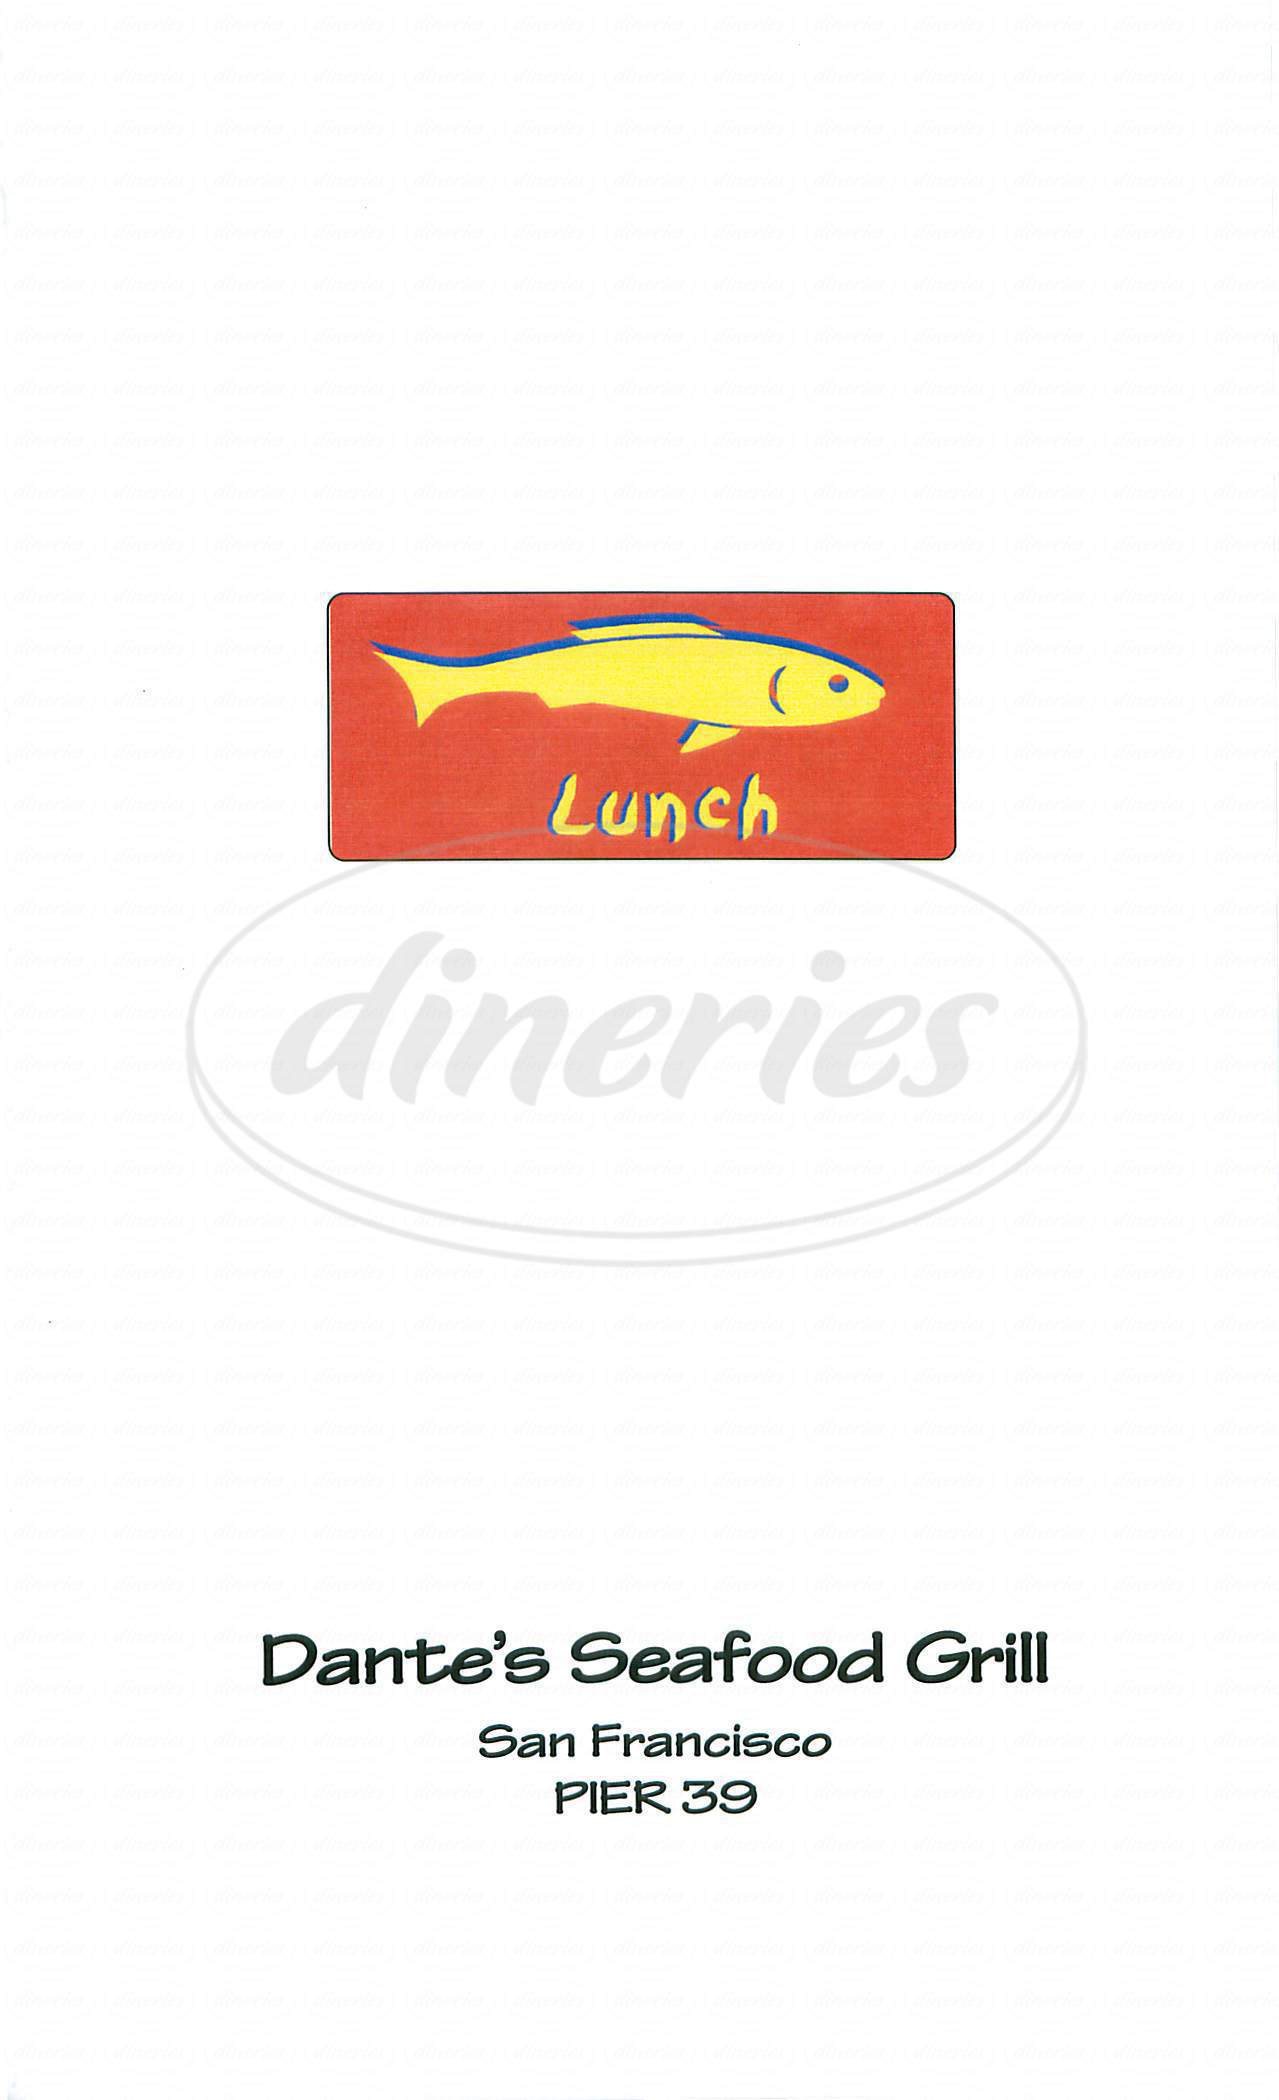 menu for Dante's Seafood Grill